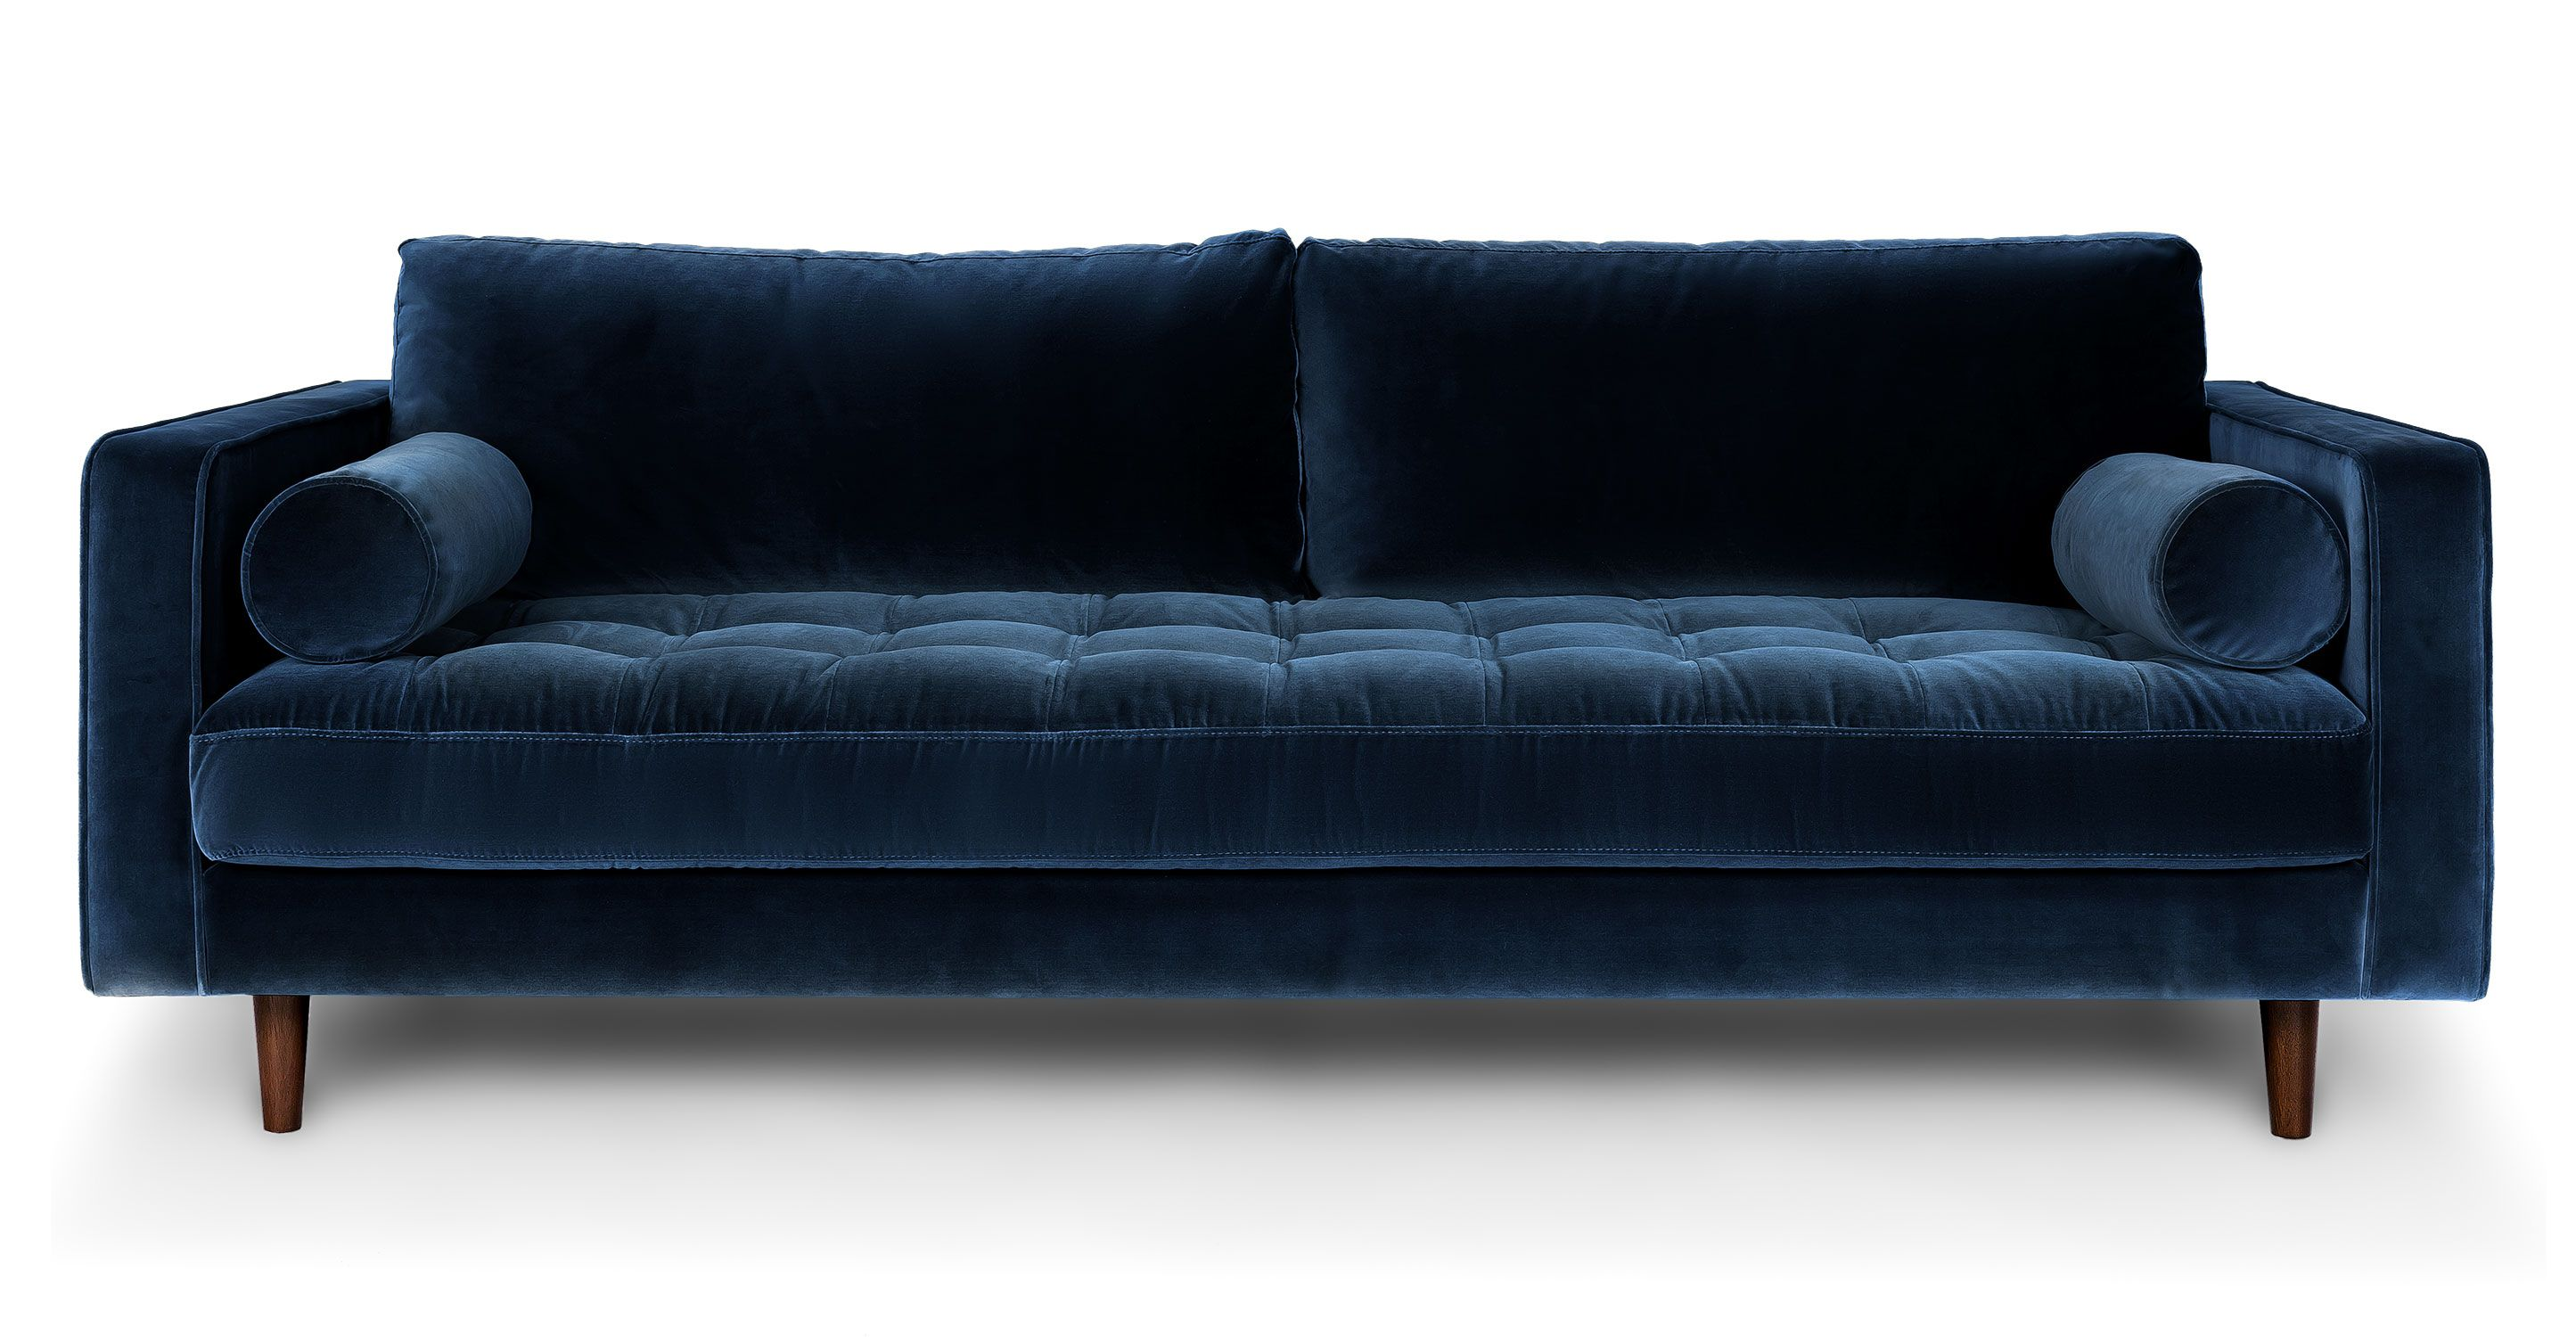 Sofas Couches Blue Velvet Tufted Sofa Upholstered Article Sven